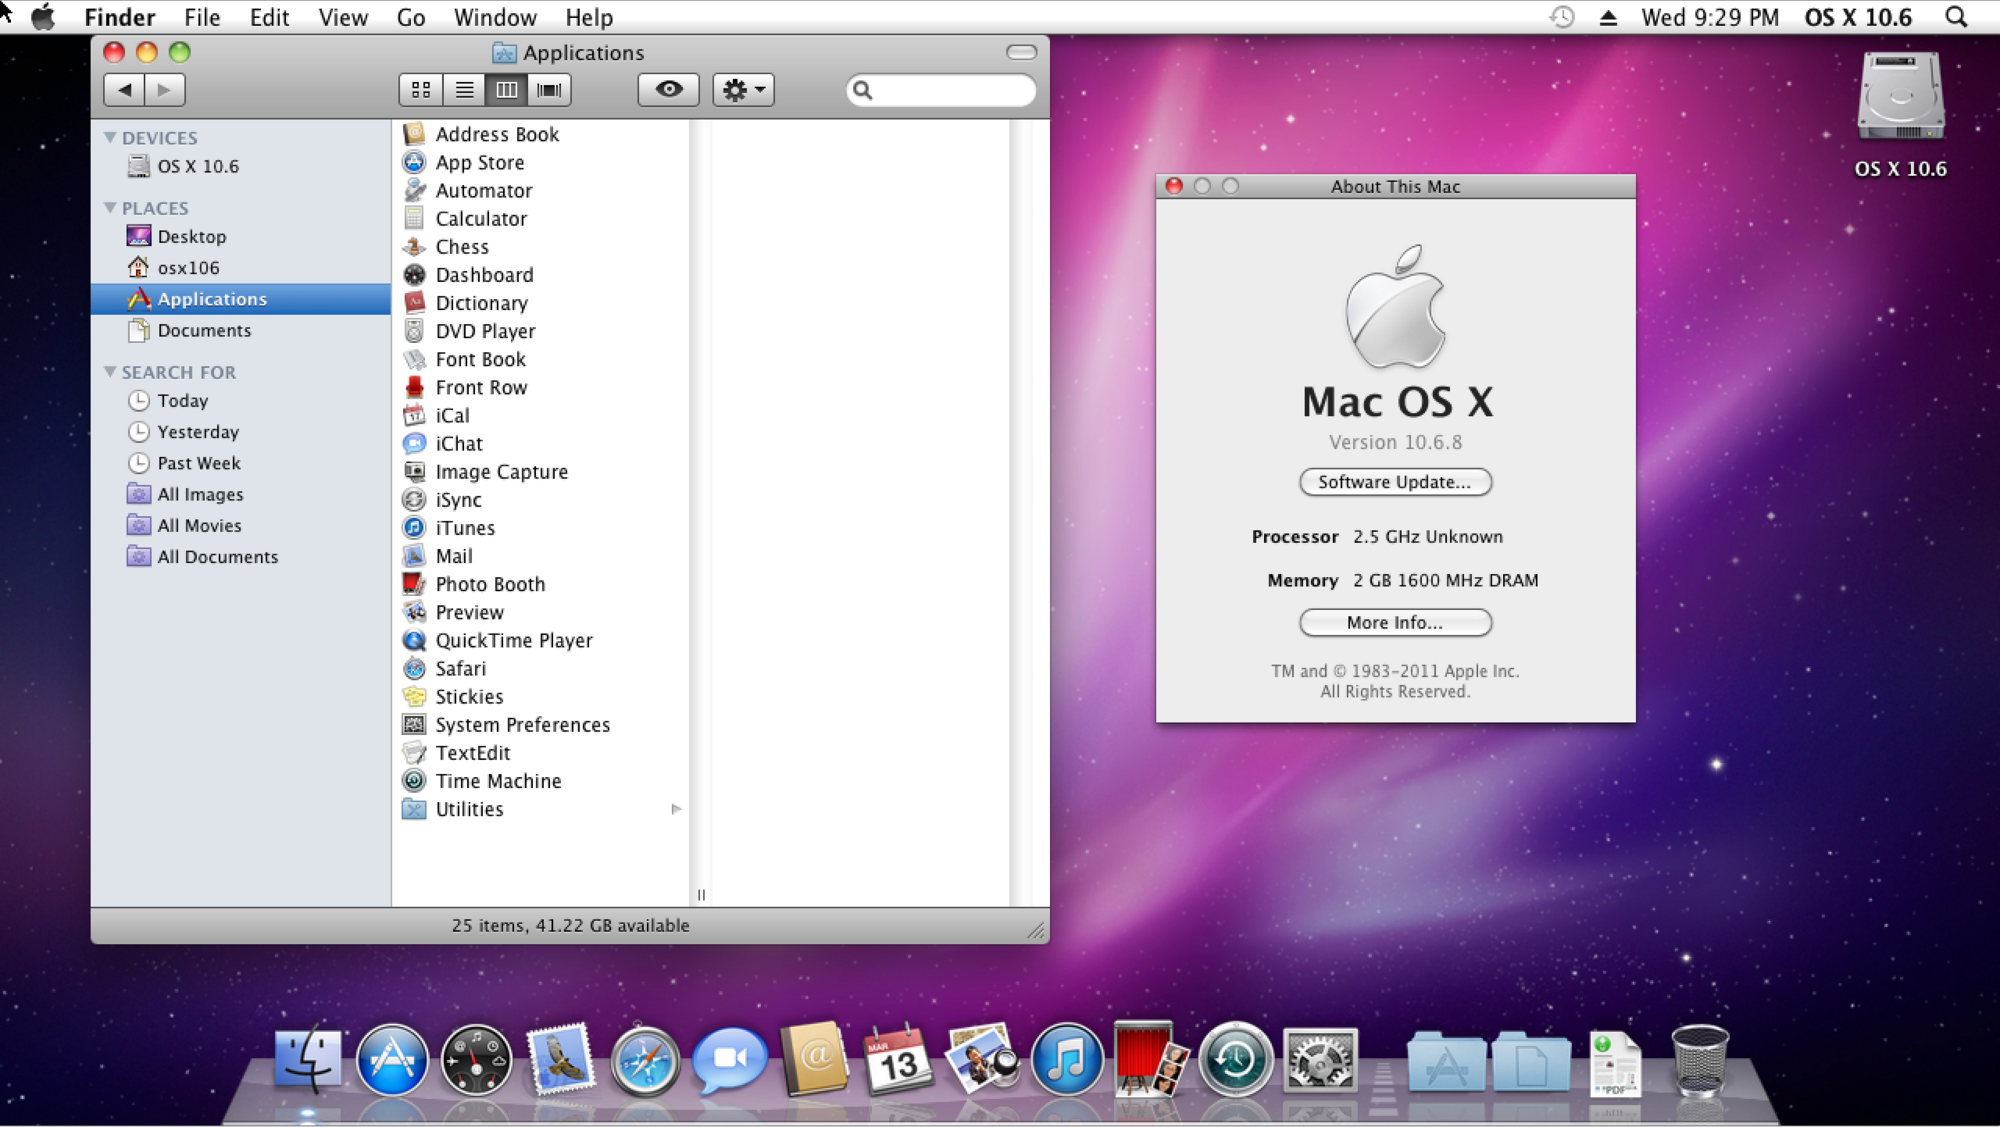 Mac OS X 10.6 Snow Leopard license